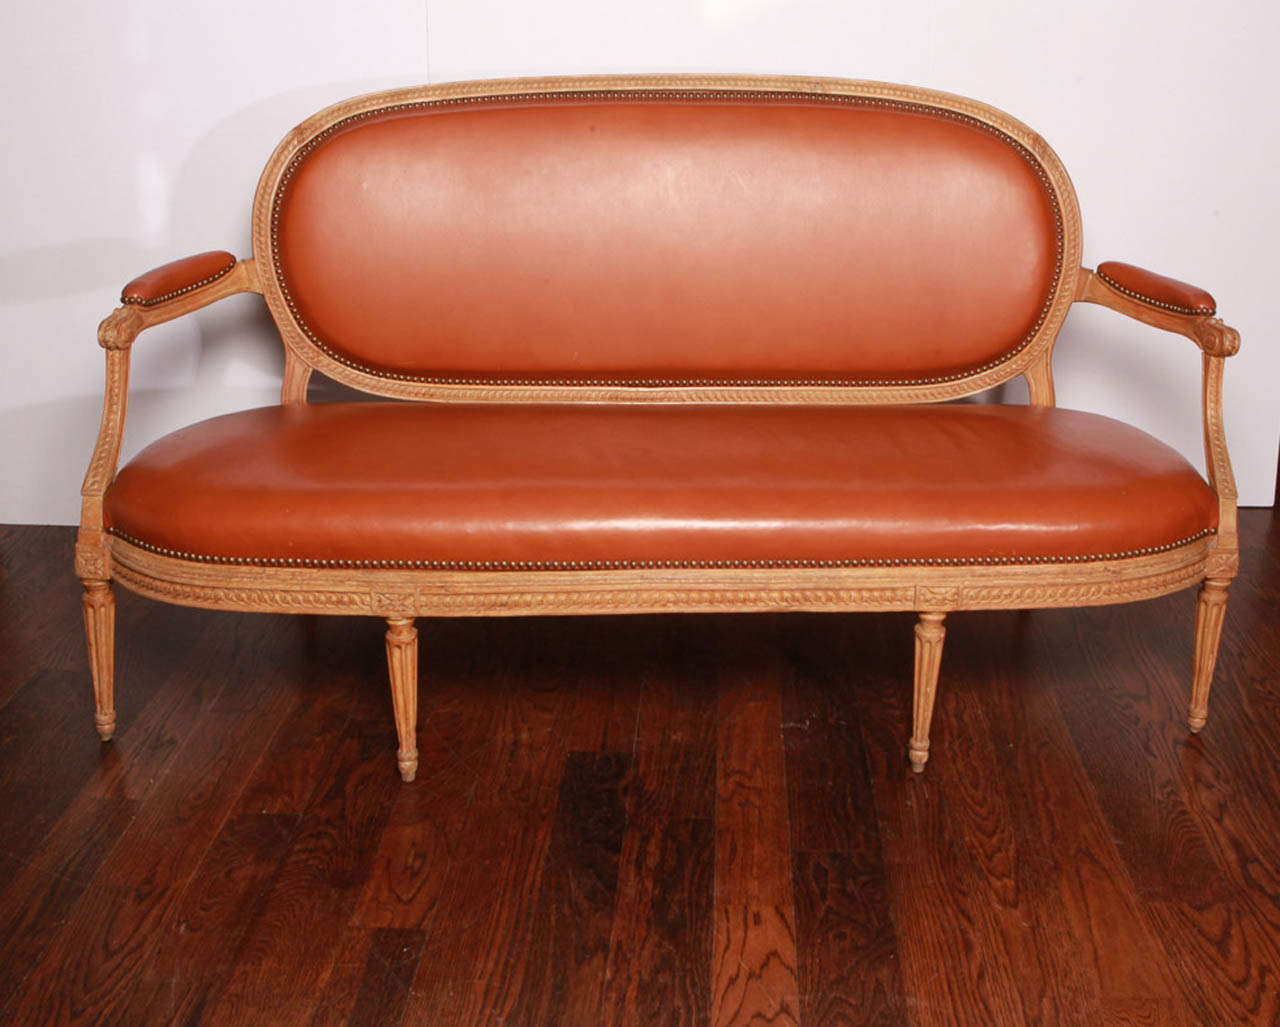 Carved beechwood frame with chestnut leather seat, back and arms. Back and seat are removable. Brass studs. Stamped